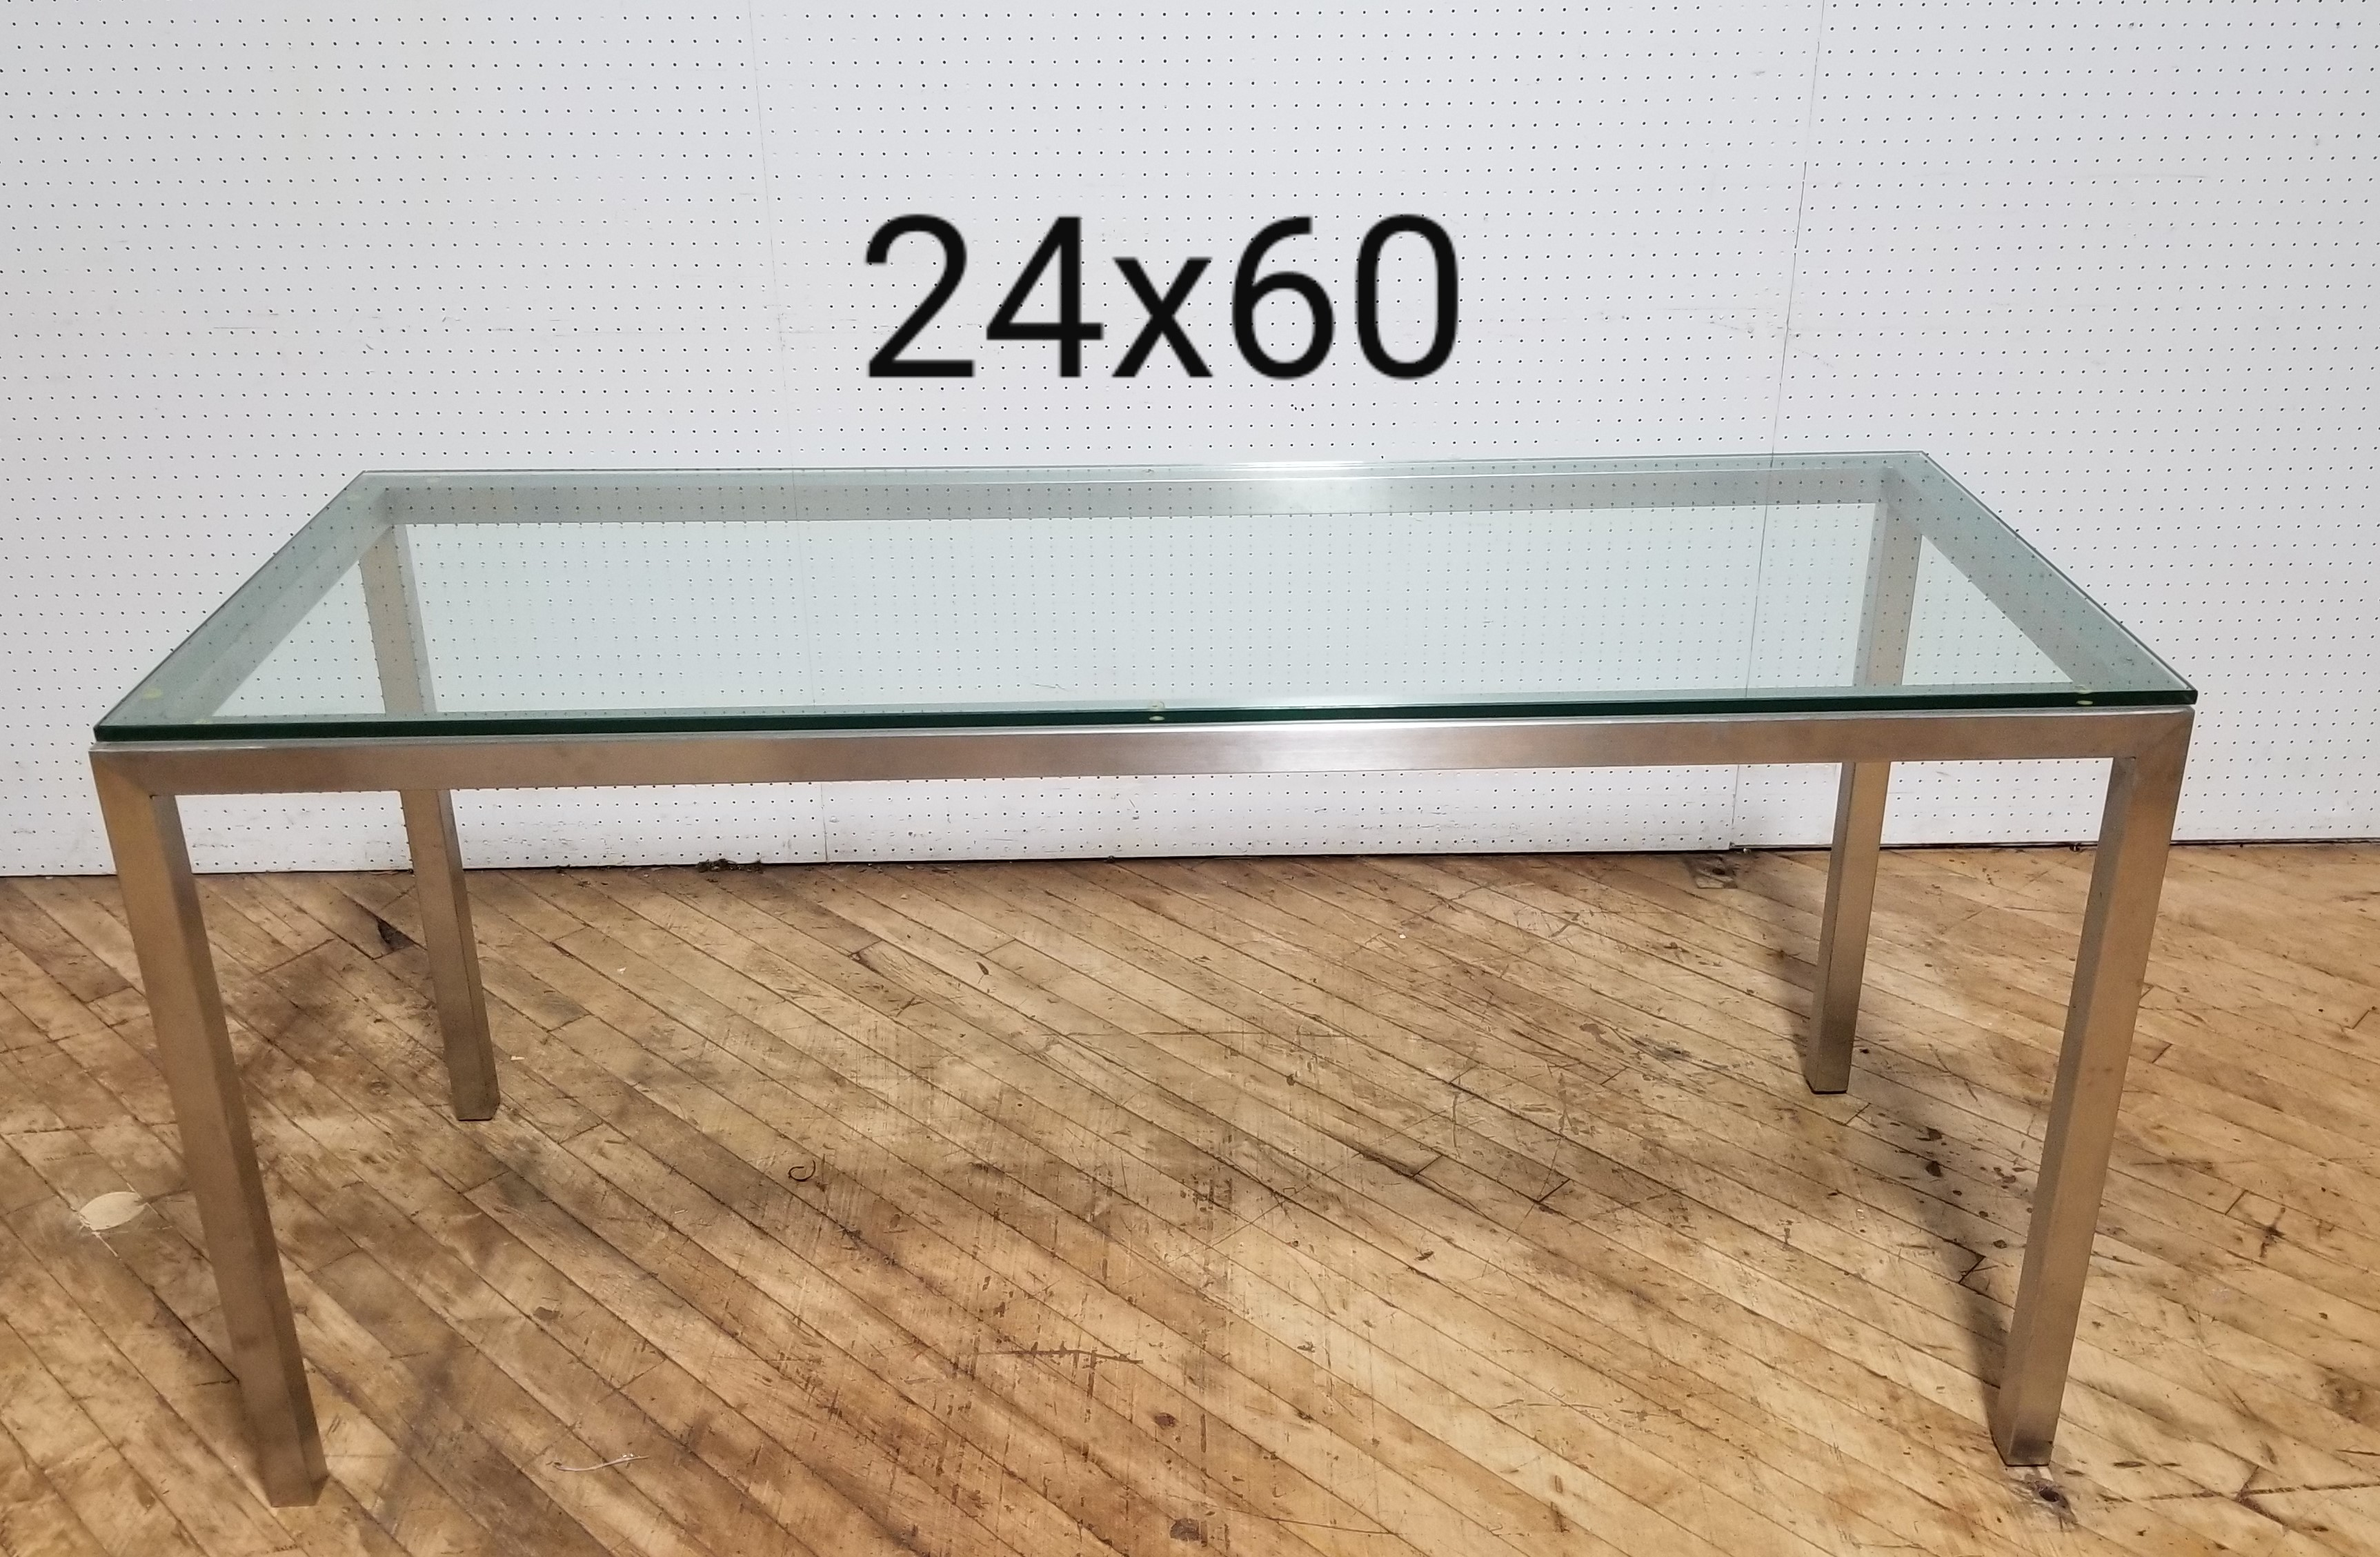 #282. 24X60 Glass Table